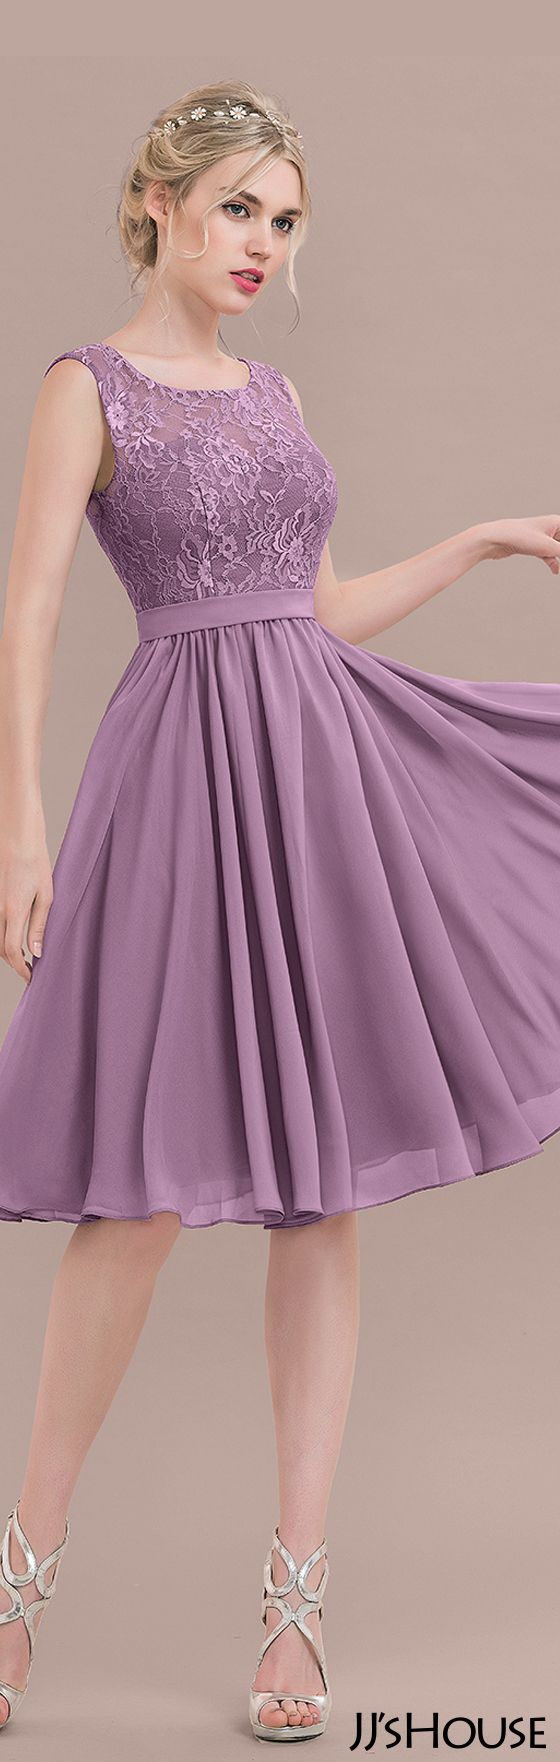 JJsHouse #Bridesmaid | Vestido | Pinterest | Vestiditos, Vestidos de ...